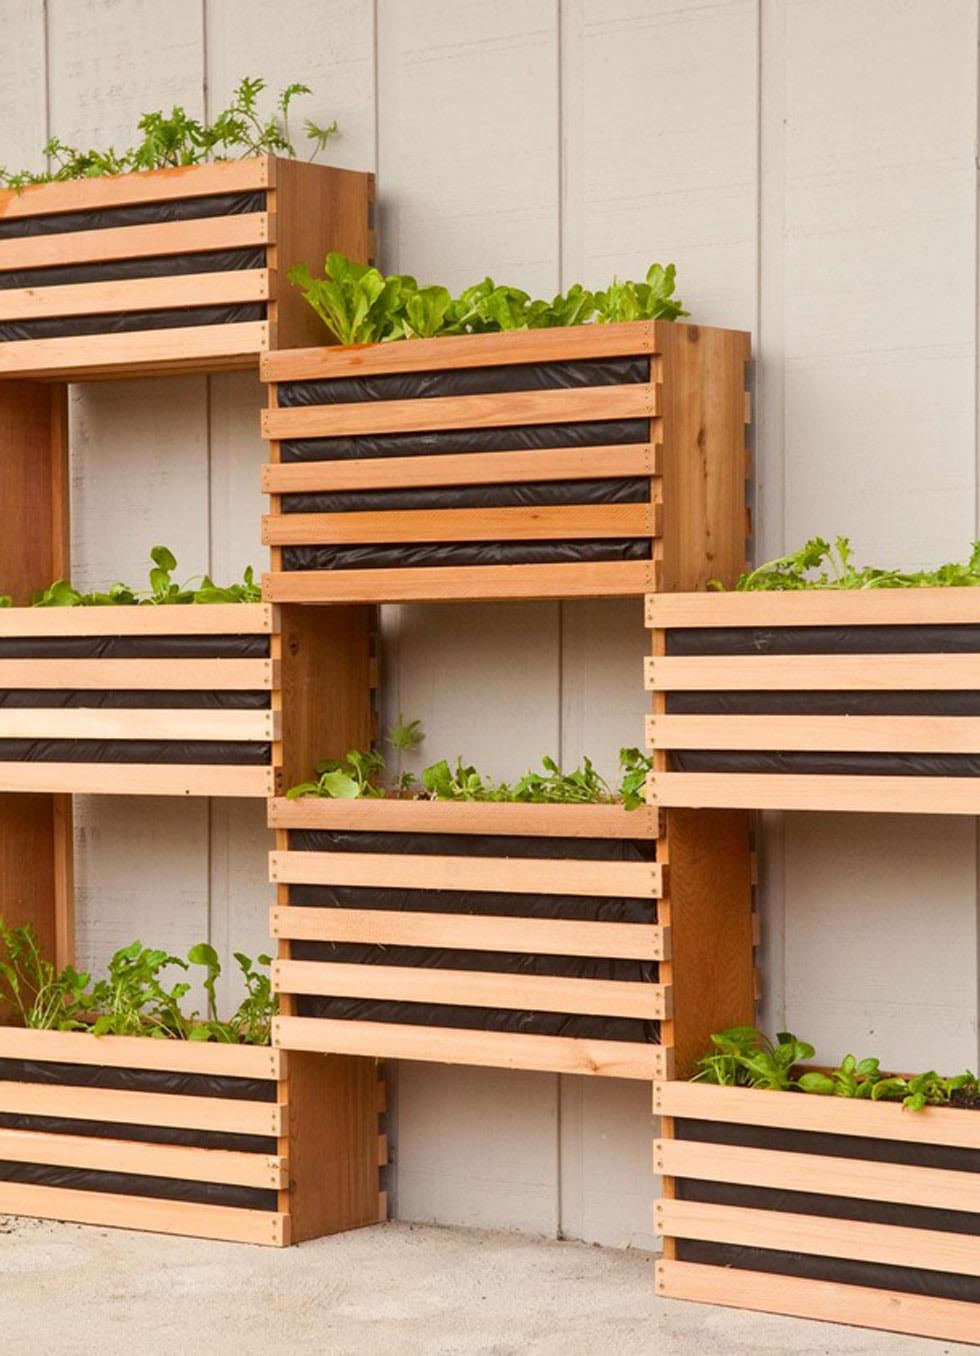 Building a Vertical Herb Garden